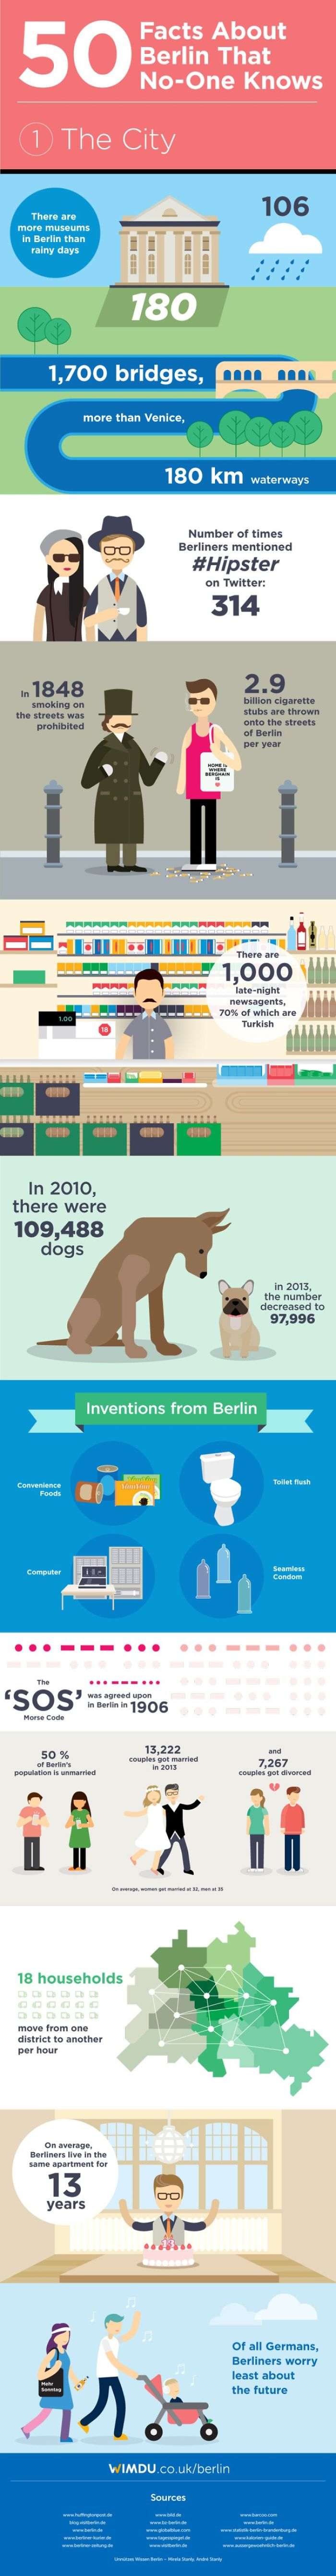 We Bet You Never Heard Of These 50 Facts About Berlin